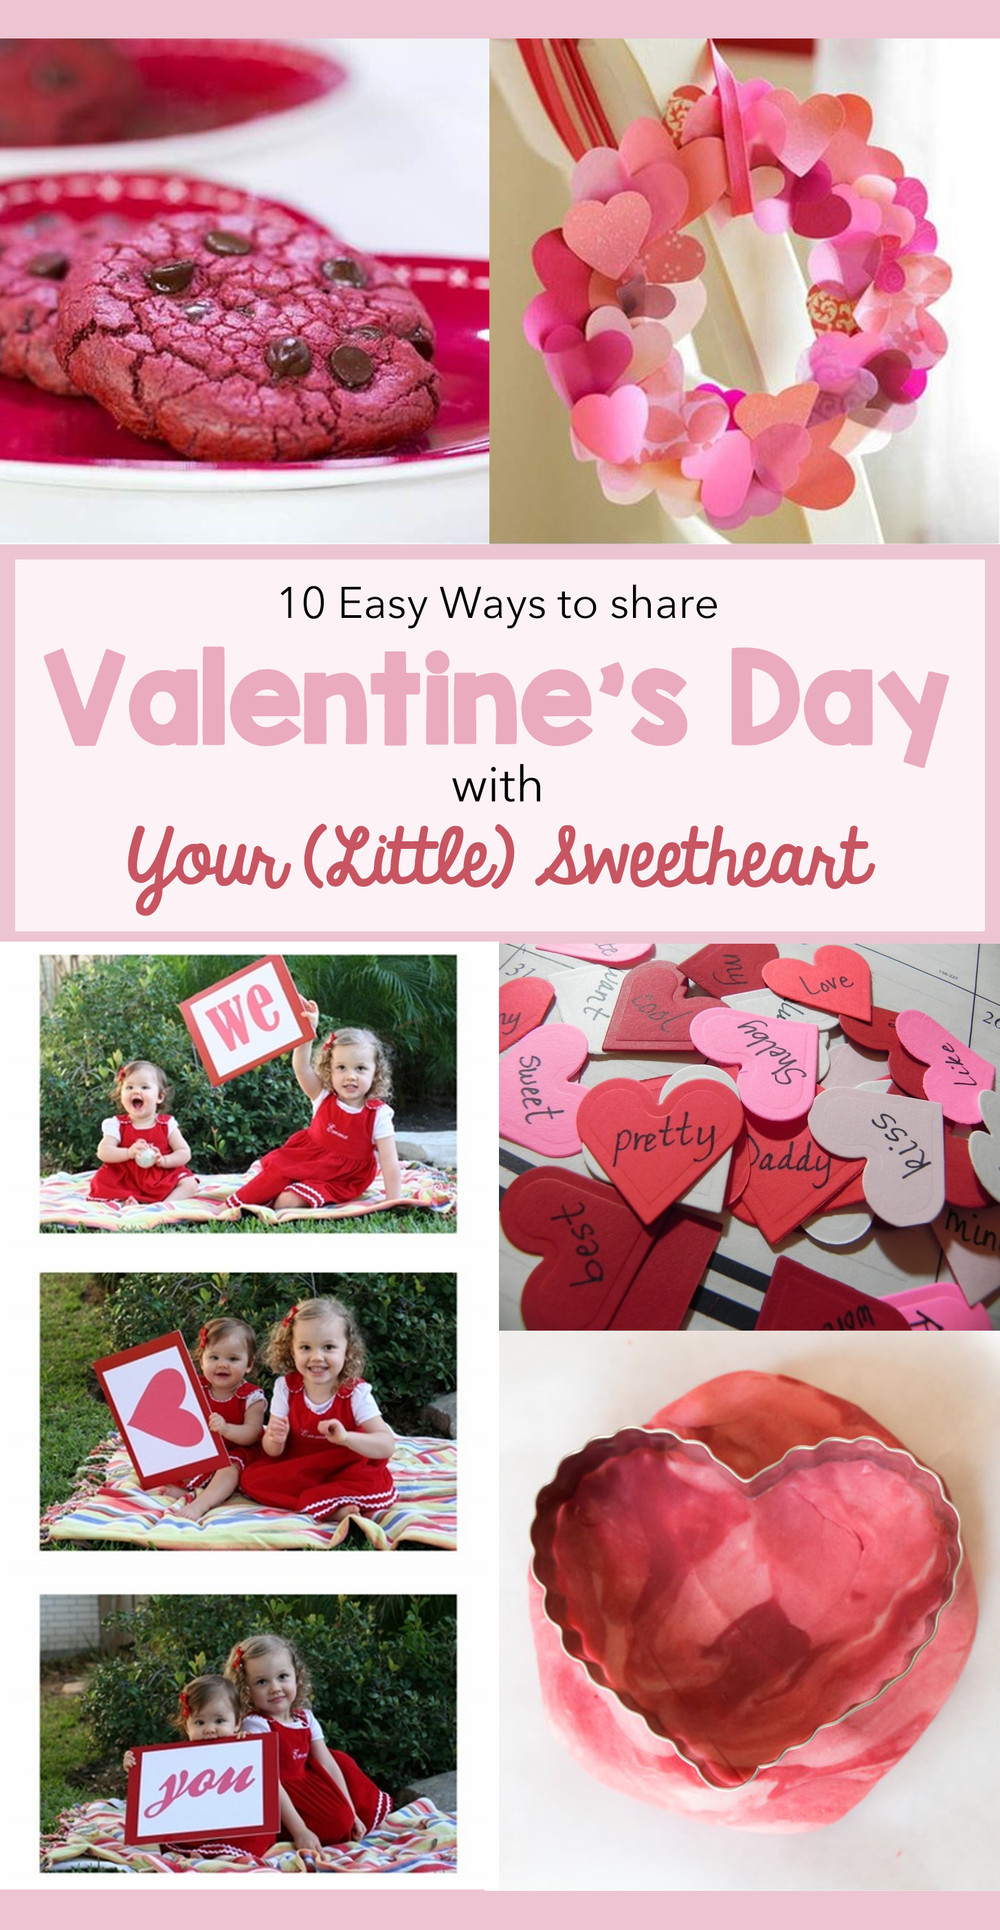 10 Easy Ways to Share Valentine's Day with Your (Little) Sweetheart